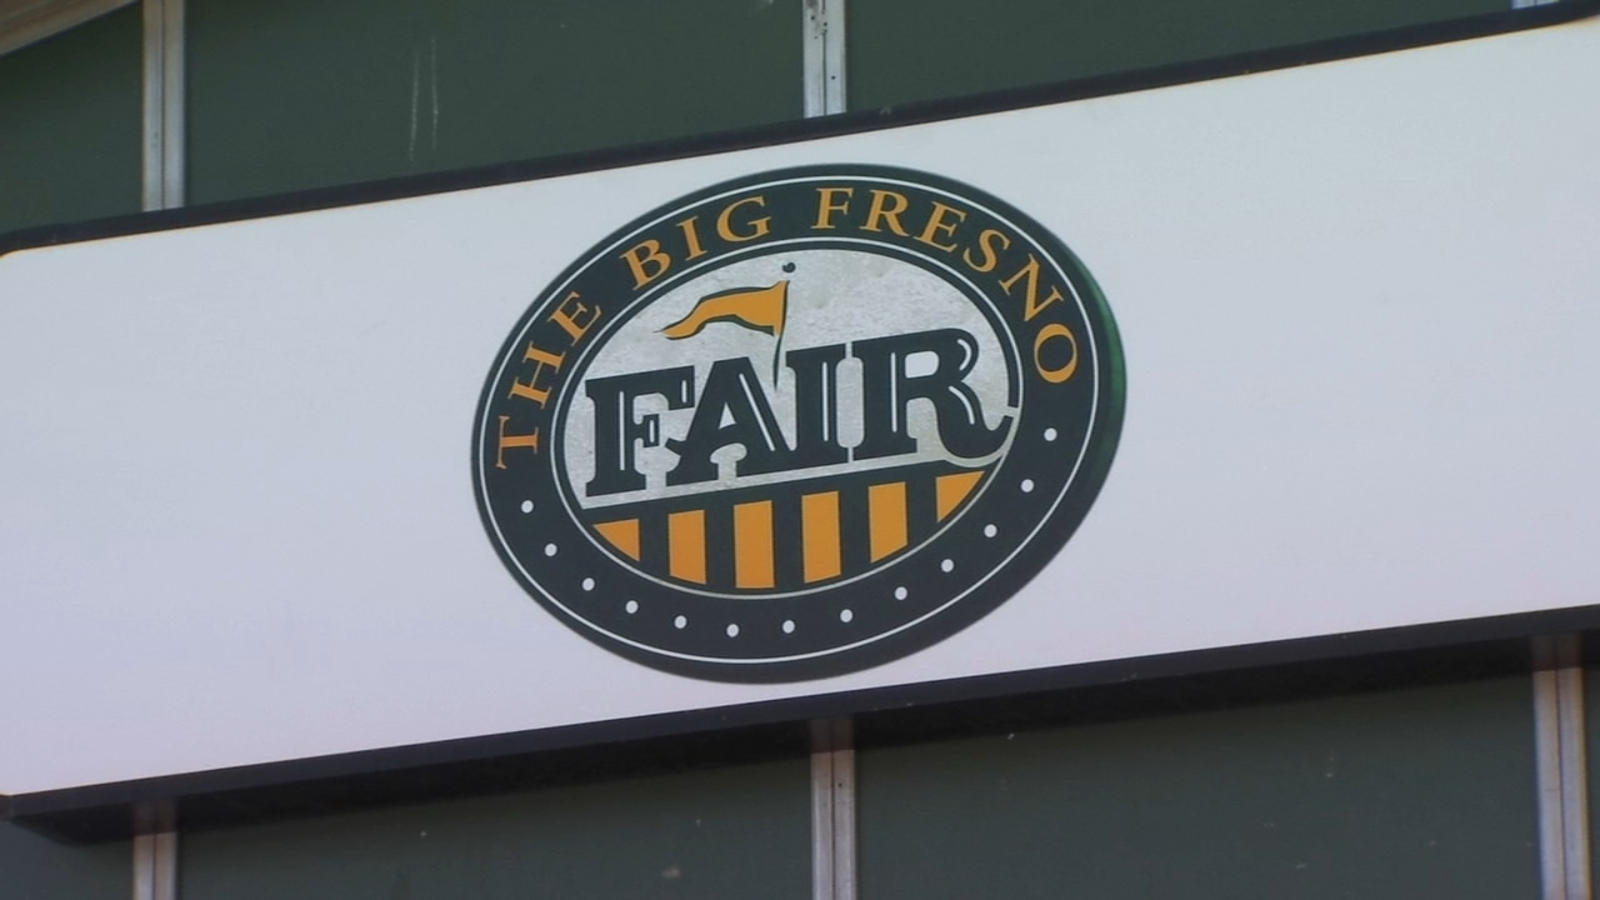 Extra day of Big Fresno Fair helped increase bottom line, vendors say